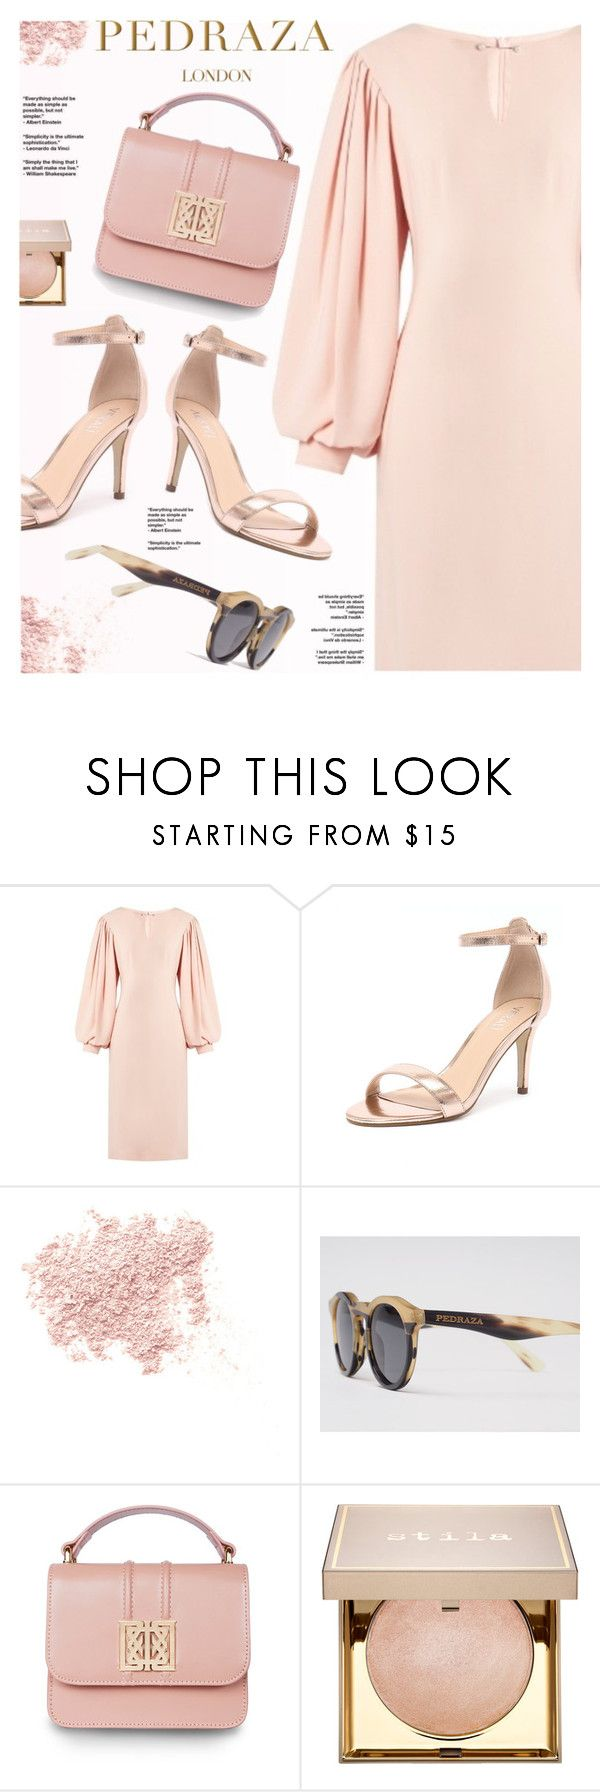 """Pedraza London"" by yexyka ❤ liked on Polyvore featuring Osman, Verali, Bare Escentuals, Stila, PedrazaLondon and Pedraza"